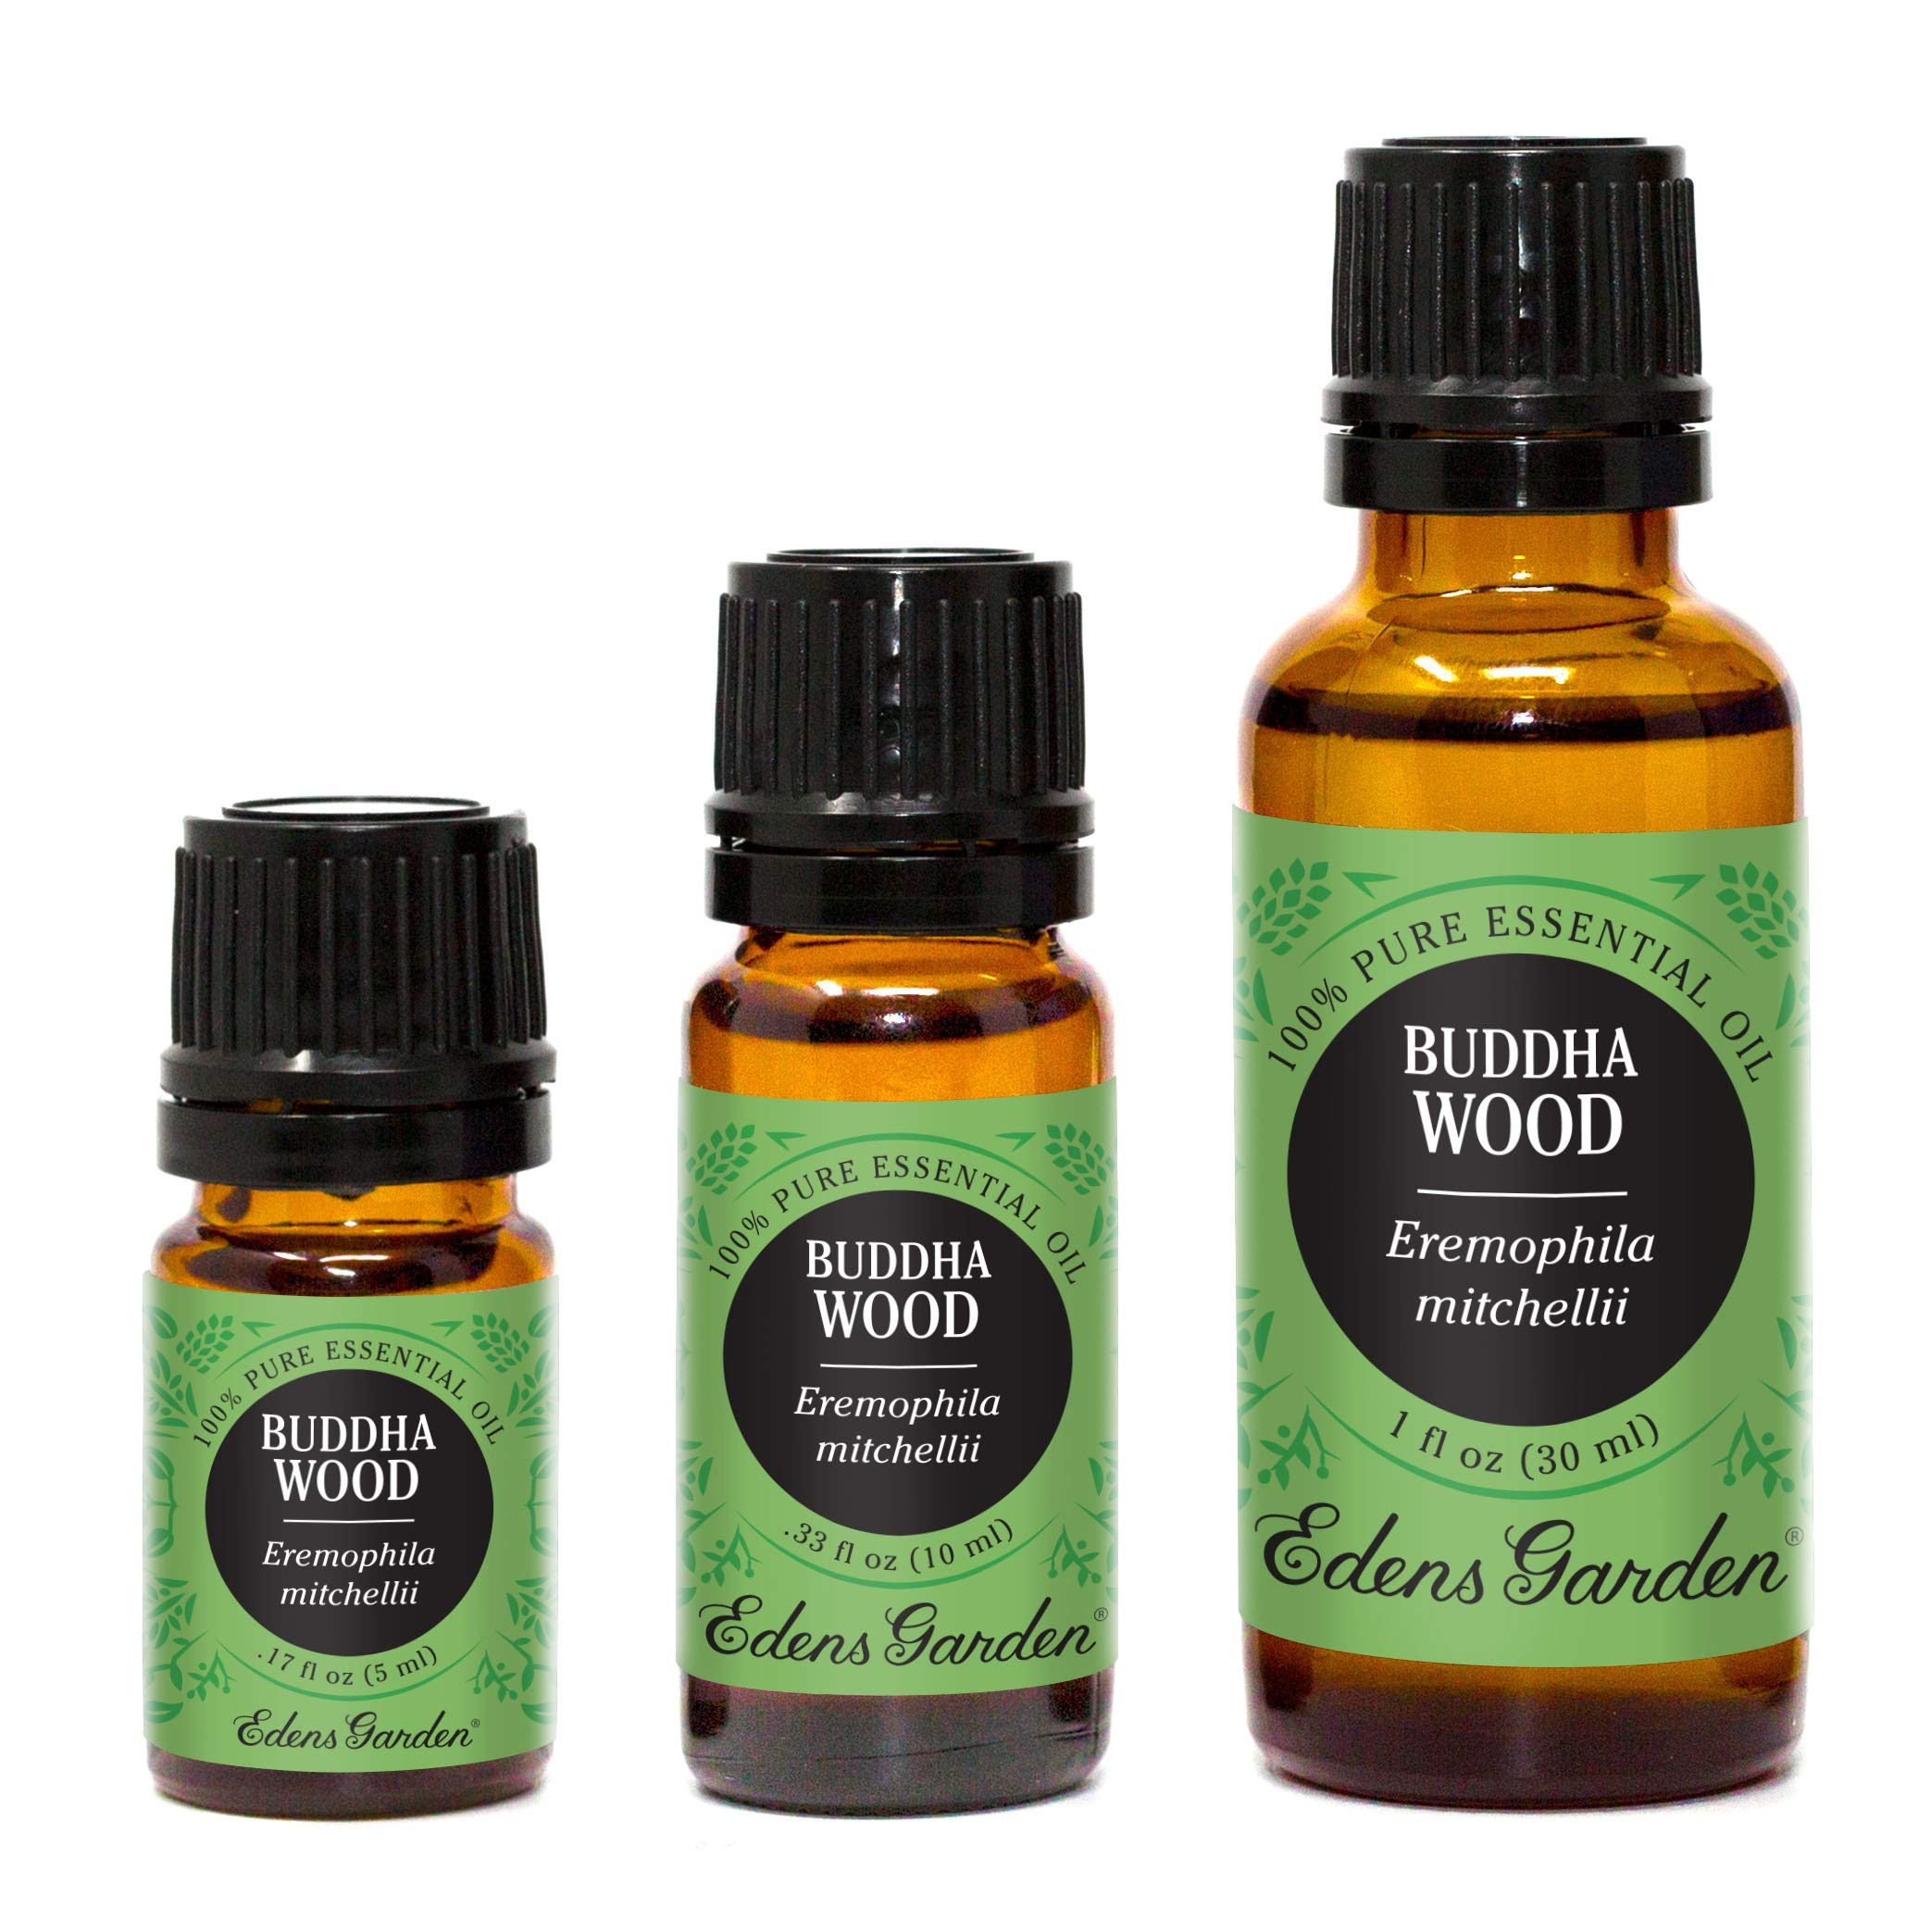 Edens Garden Buddha Wood 10 ml 100% Pure Undiluted Therapeutic Grade Essential Oil GC/MS Tested